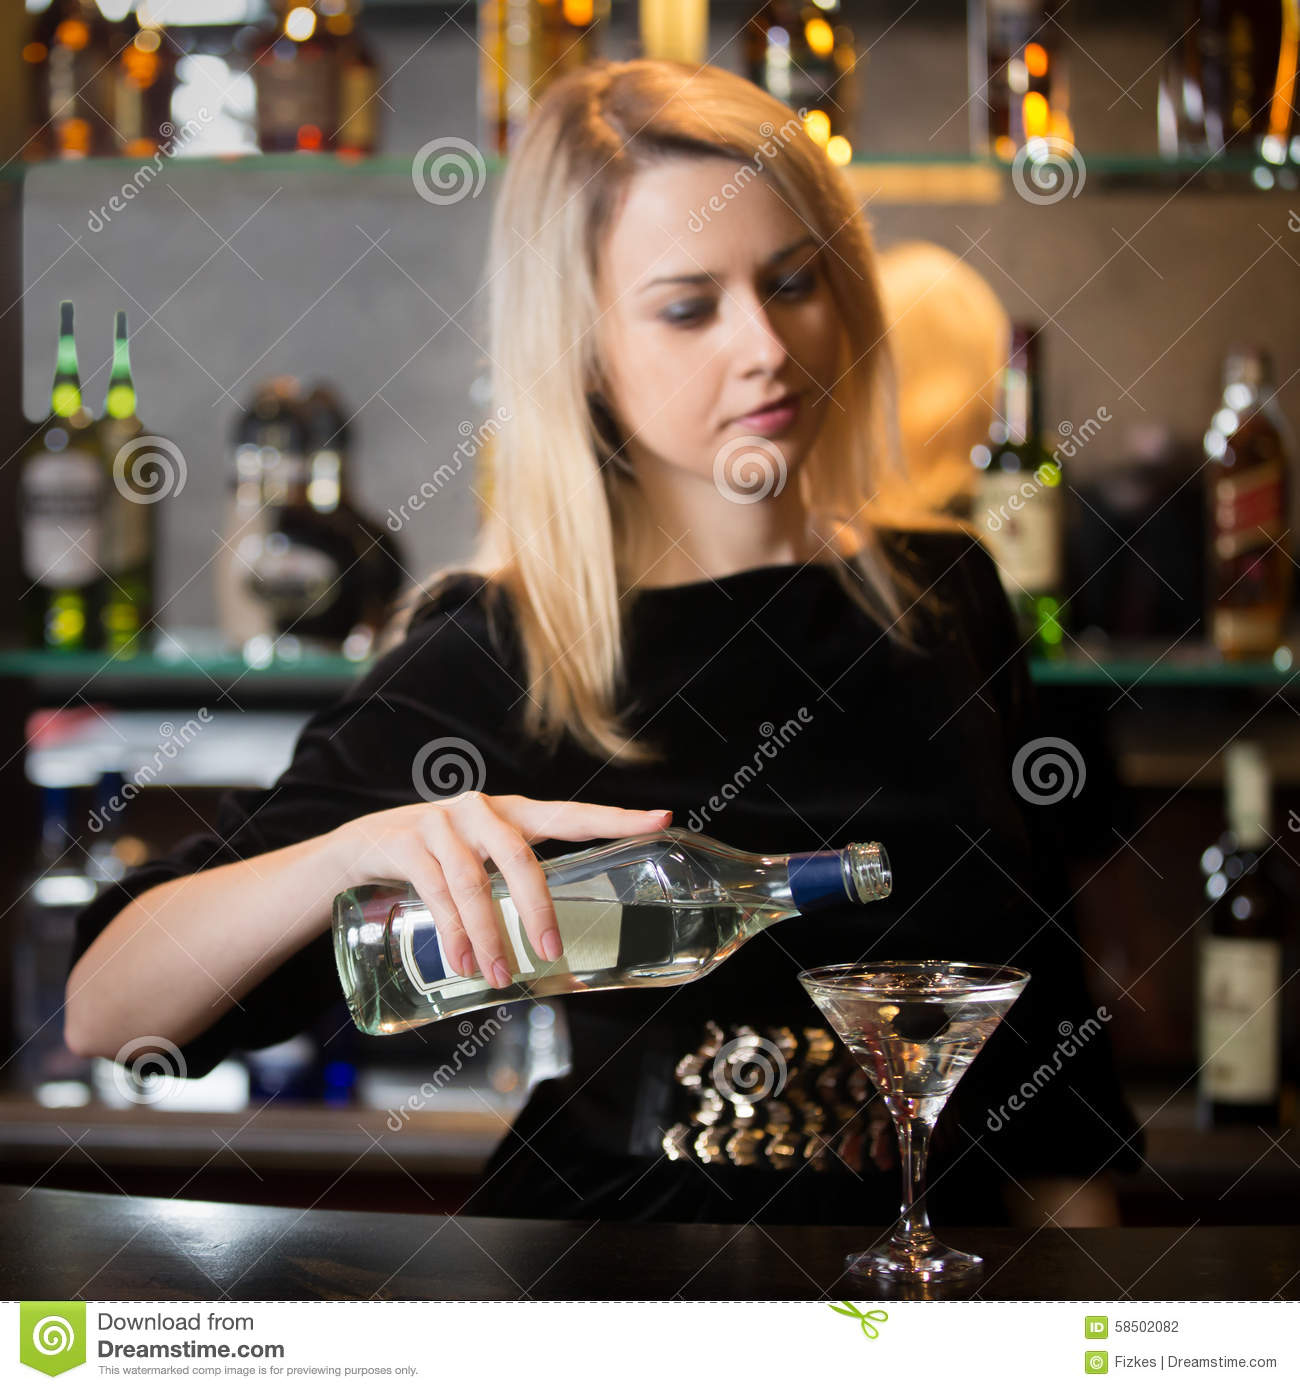 Blond girl serving alcohol drink stock photo image 58502082 for Cocktail bartender